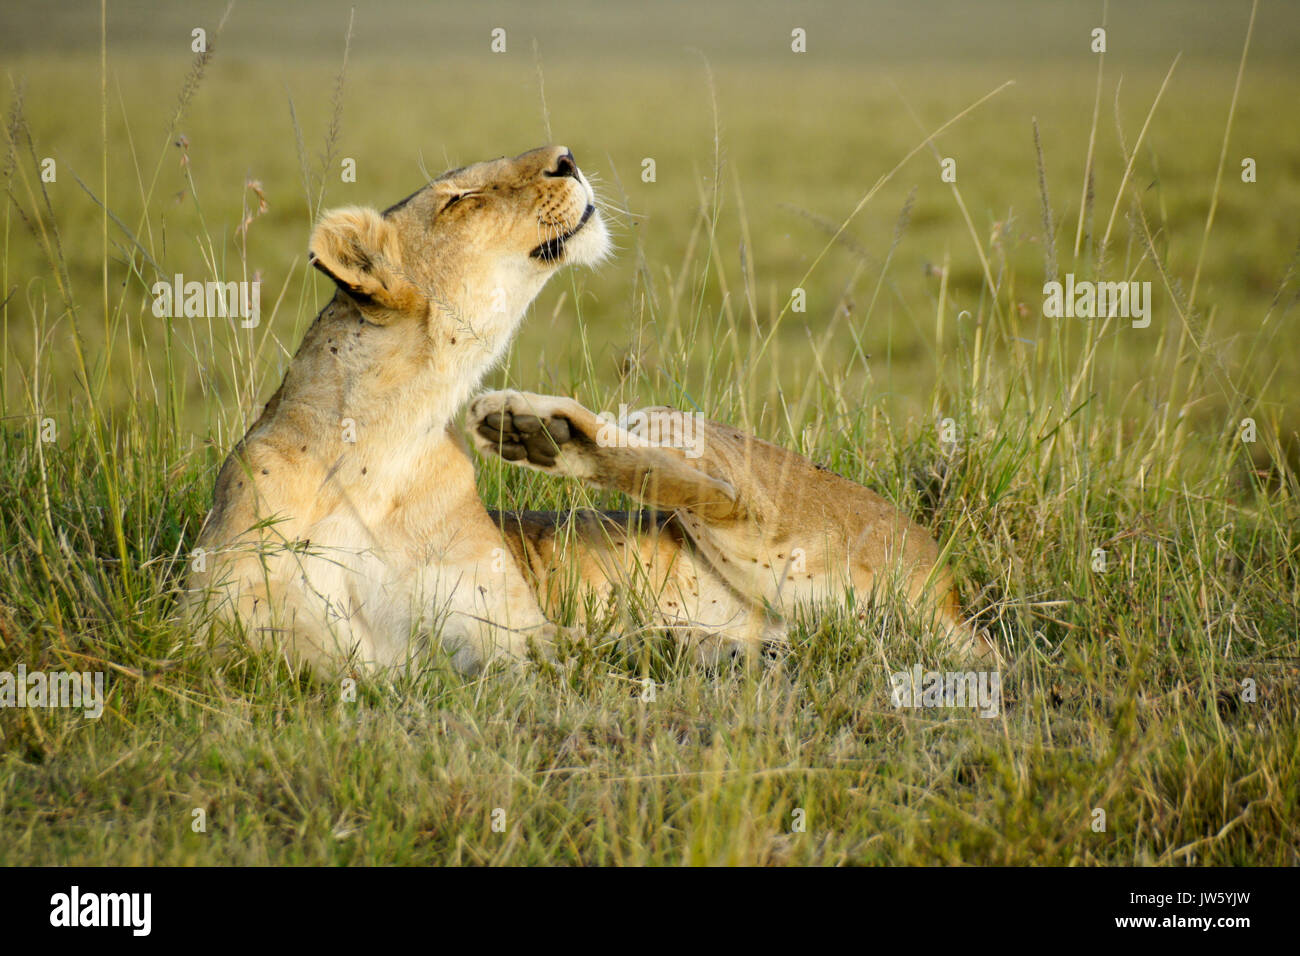 Lioness scratching, bothered by flies, Masai Mara Game Reserve, Kenya - Stock Image